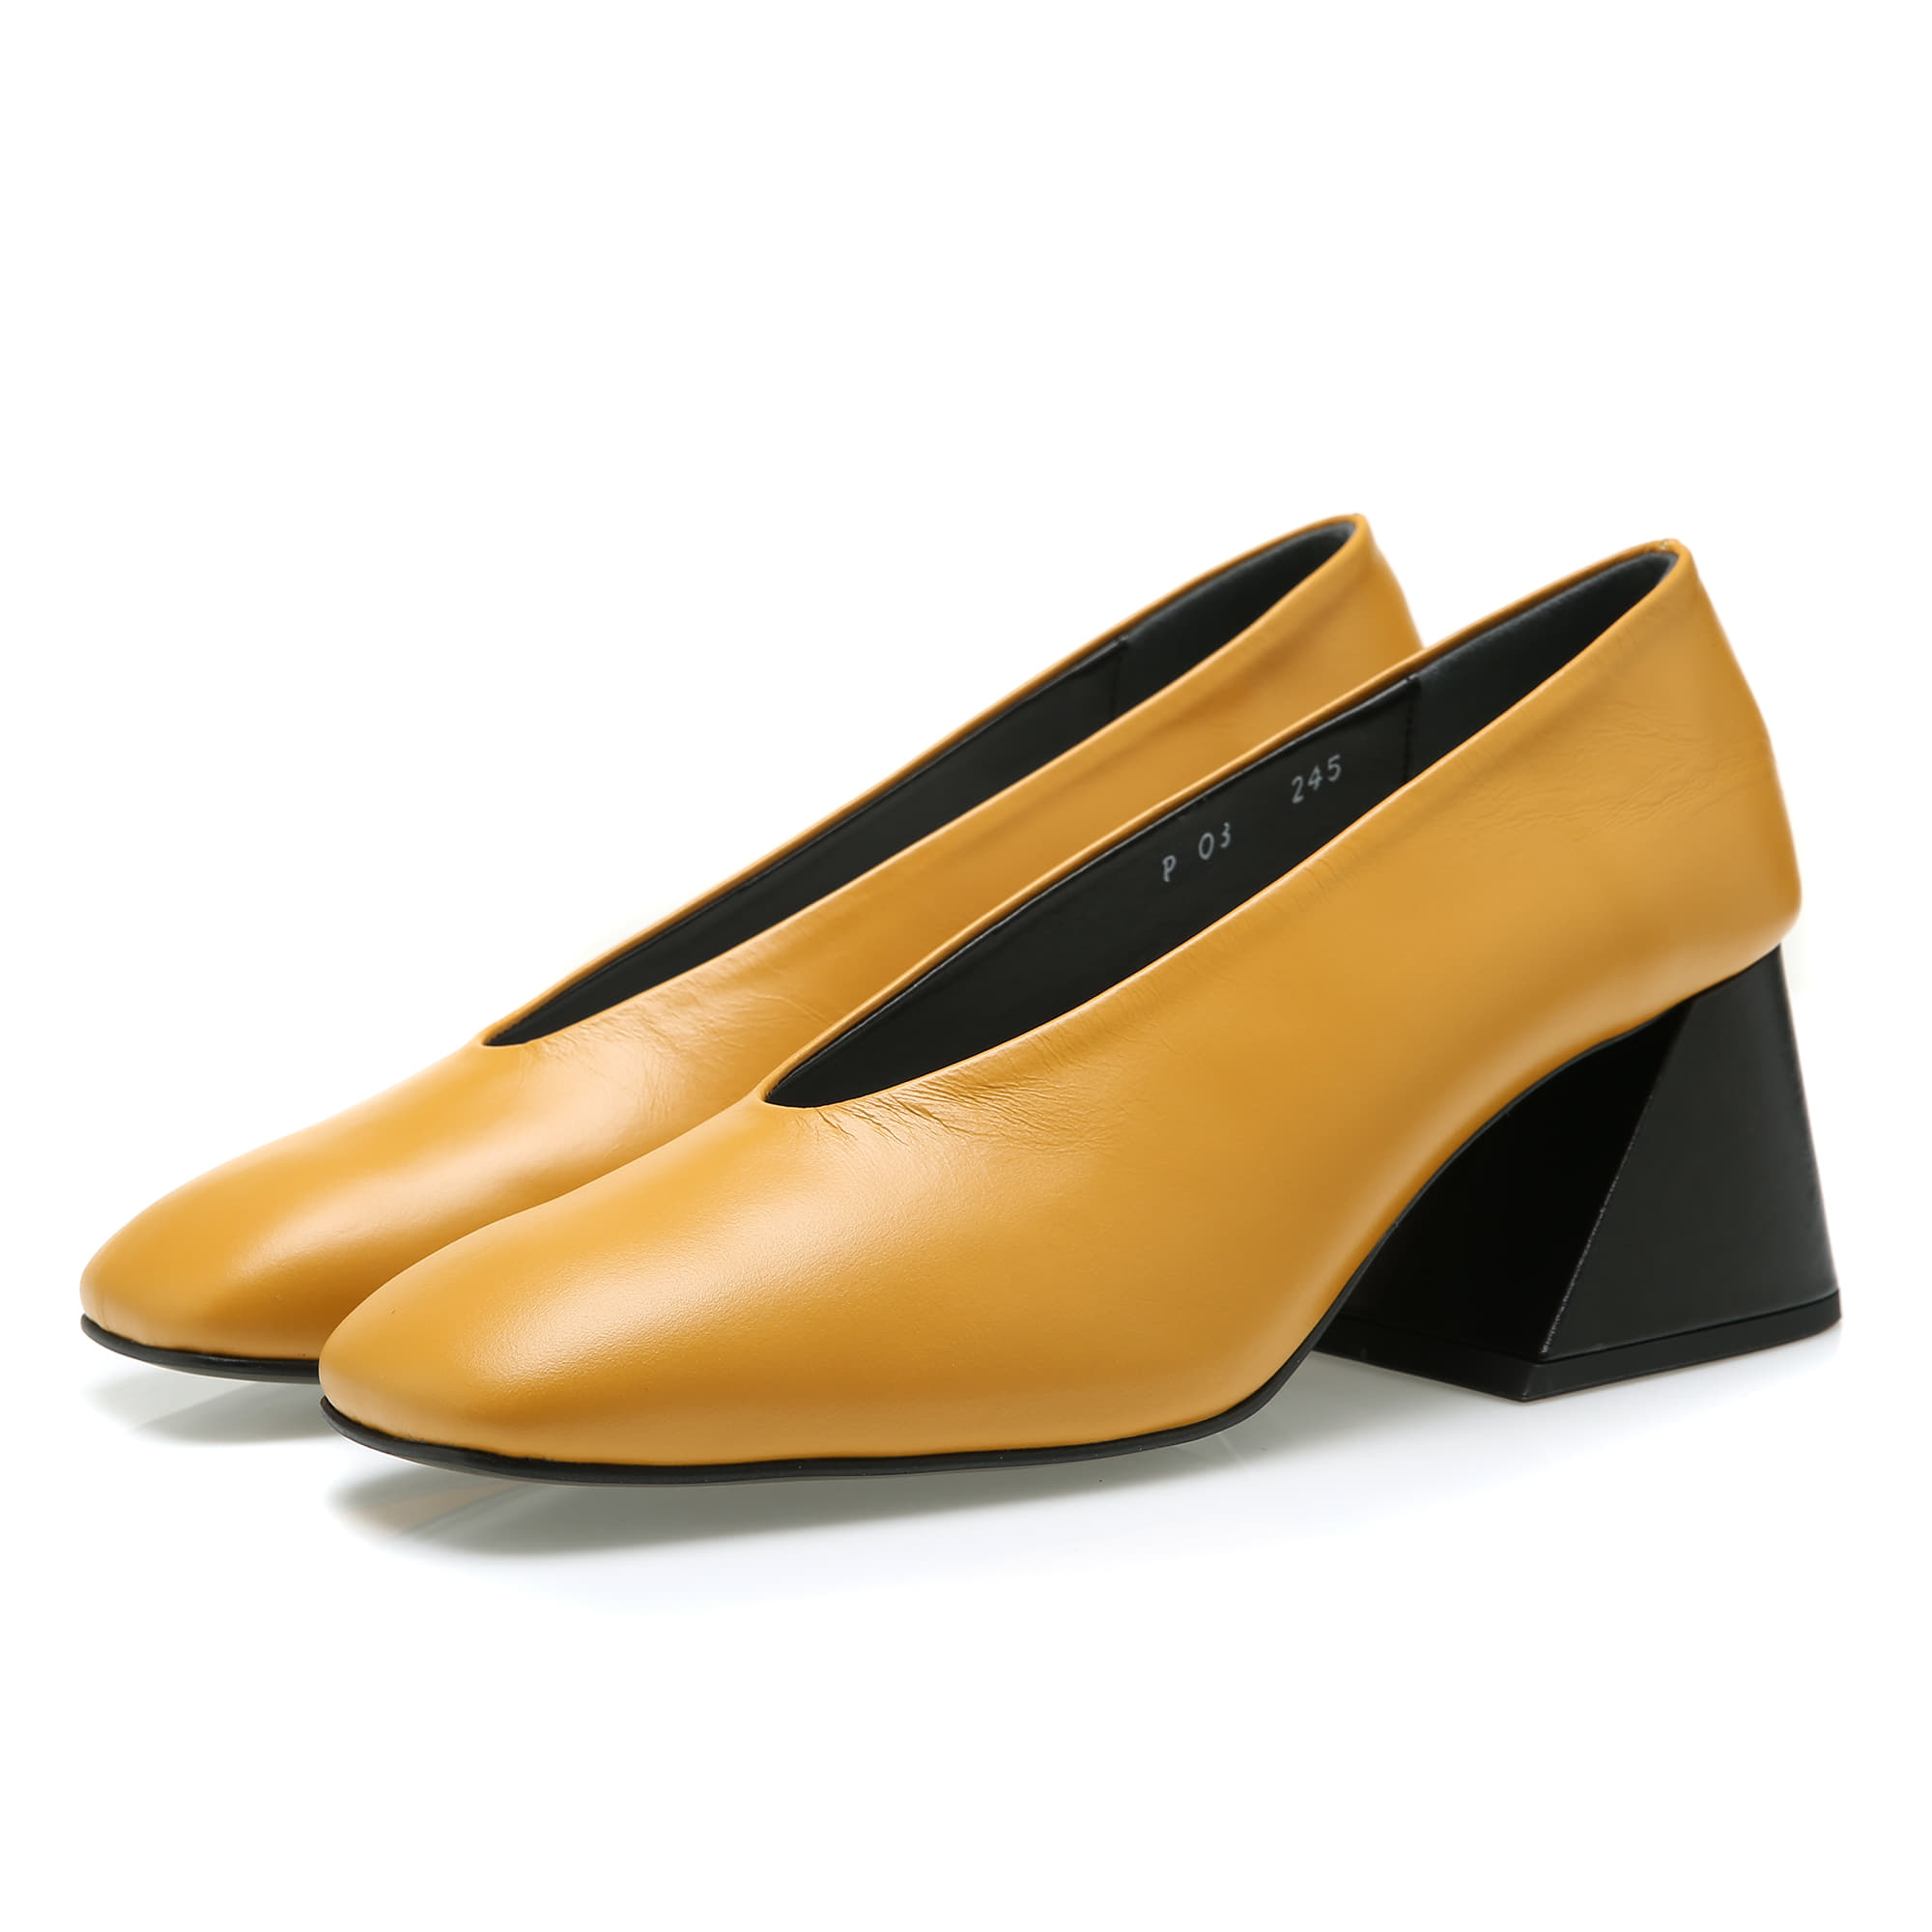 YY Maple Mori Pumps / YY6A-P03 / Mustard